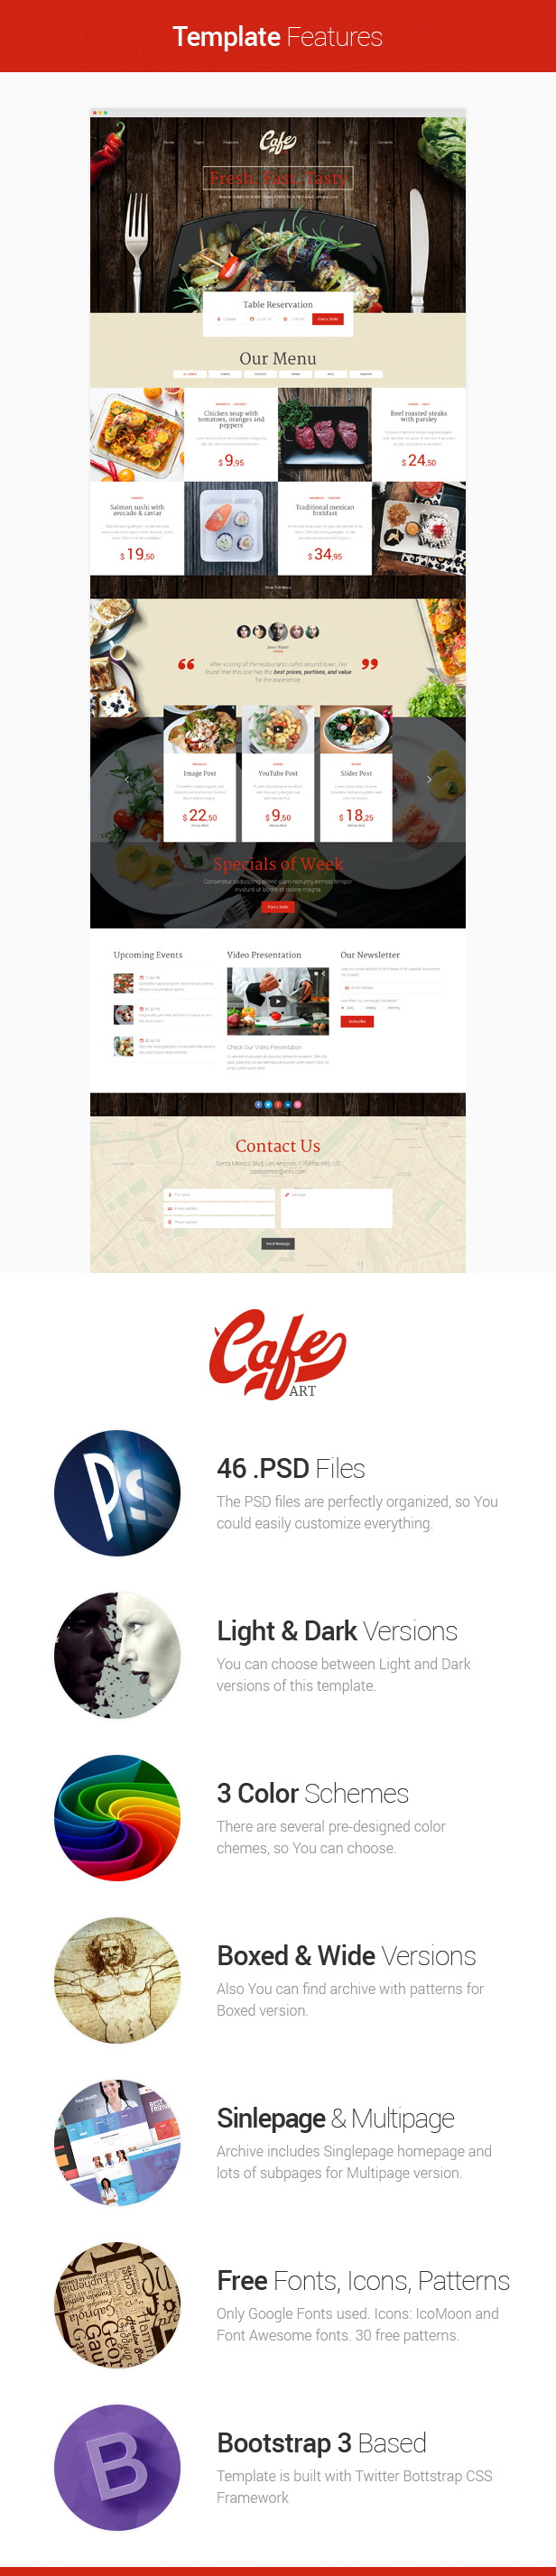 Cafe Art - Cafe and Restaurant PSD template